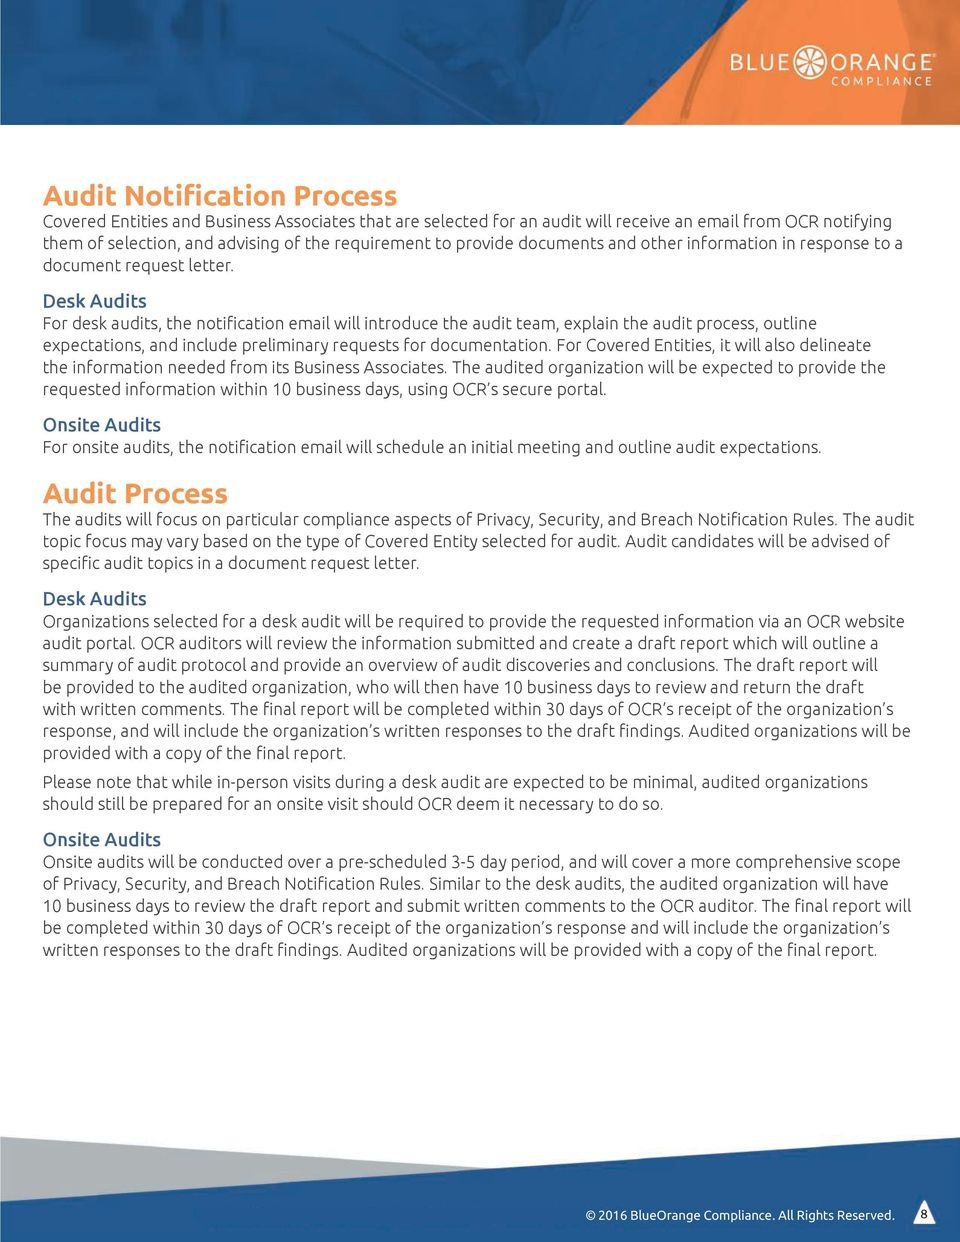 Desk Audits For desk audits, the notification email will introduce the audit team, explain the audit process, outline expectations, and include preliminary requests for documentation.